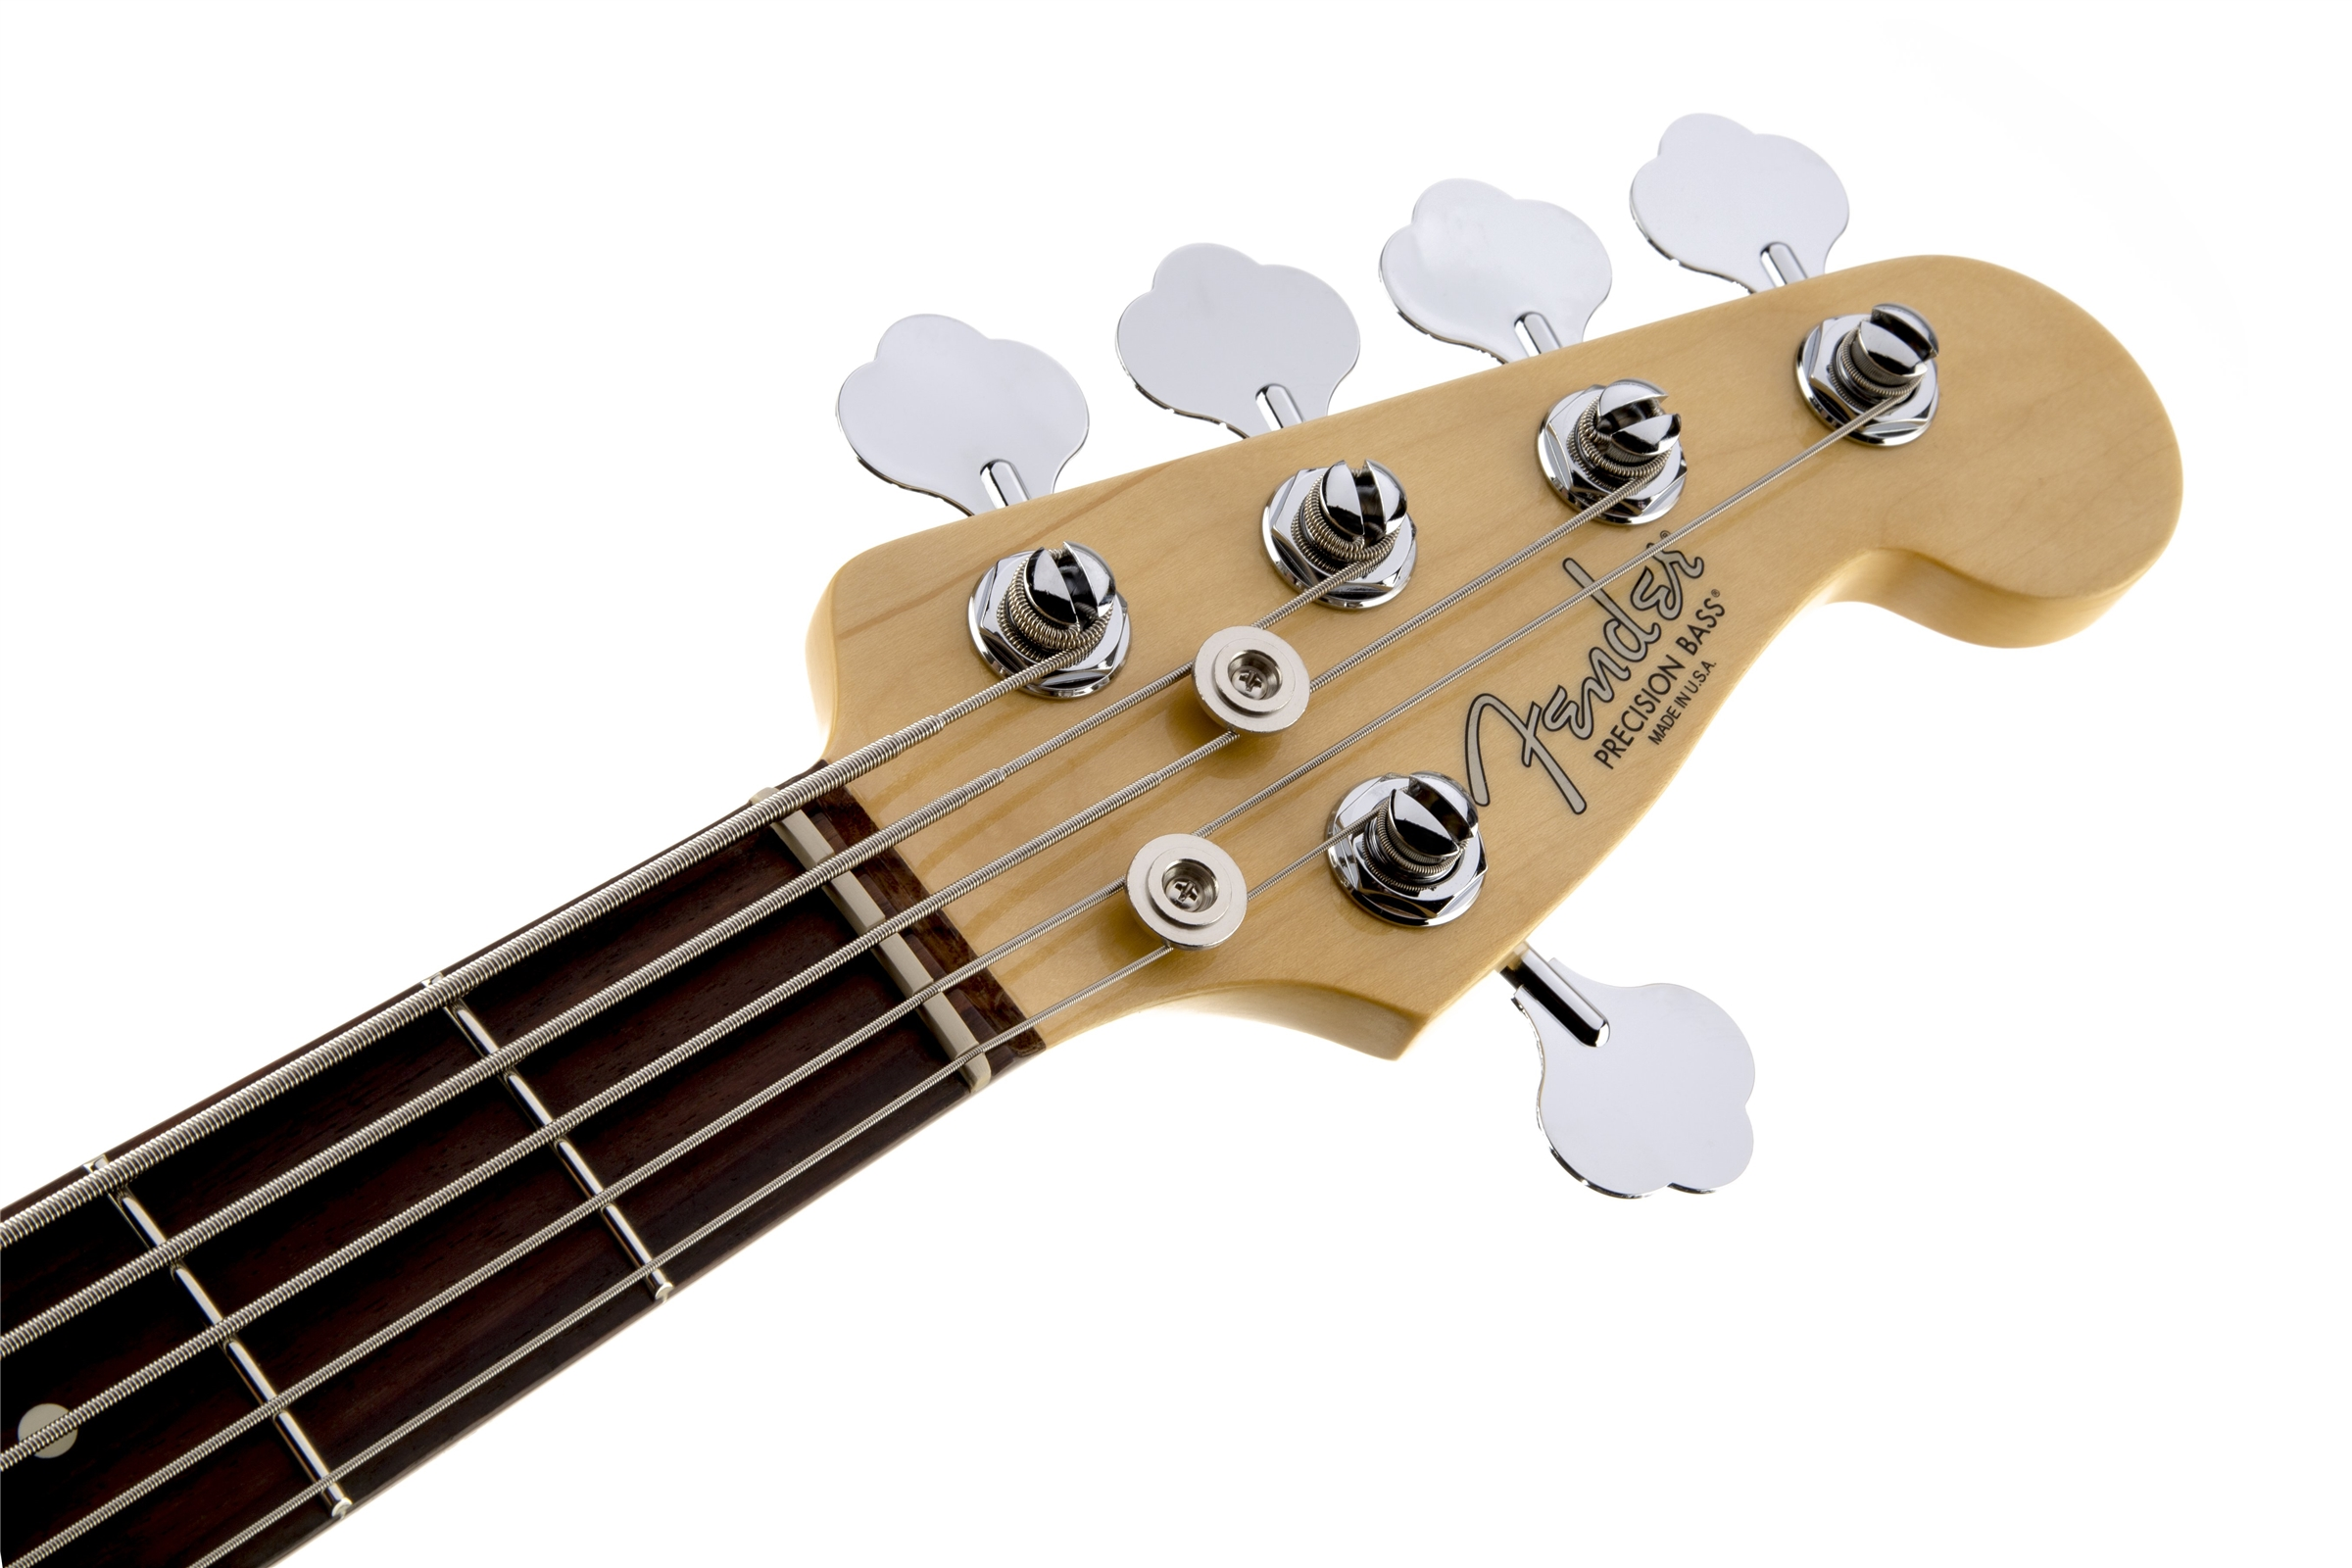 Fender American Standard Precision Bass® V 3-Color Sunburst Rosewood Fingerboard Electric Bass Guitar